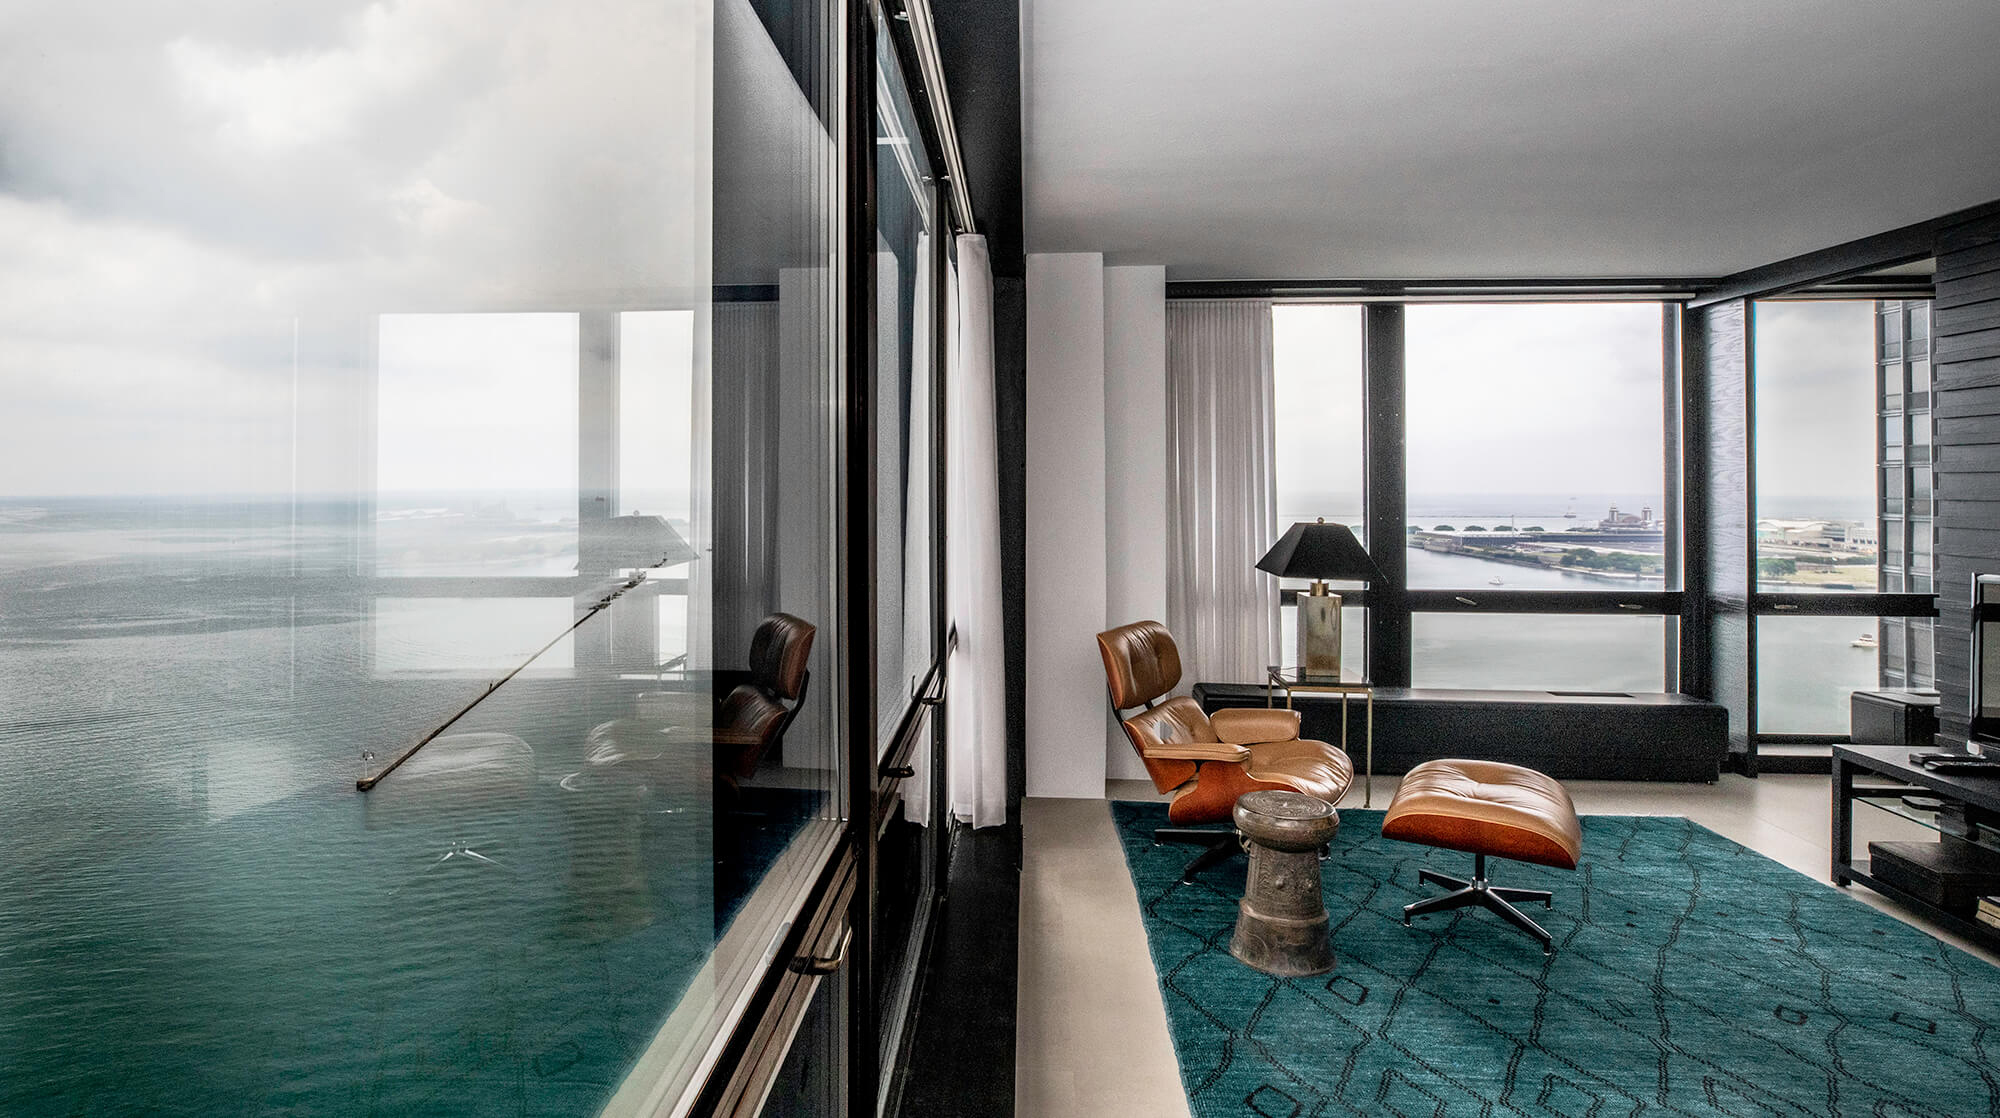 Photograph of condo room with view of Lake Michigan and mid century furniture